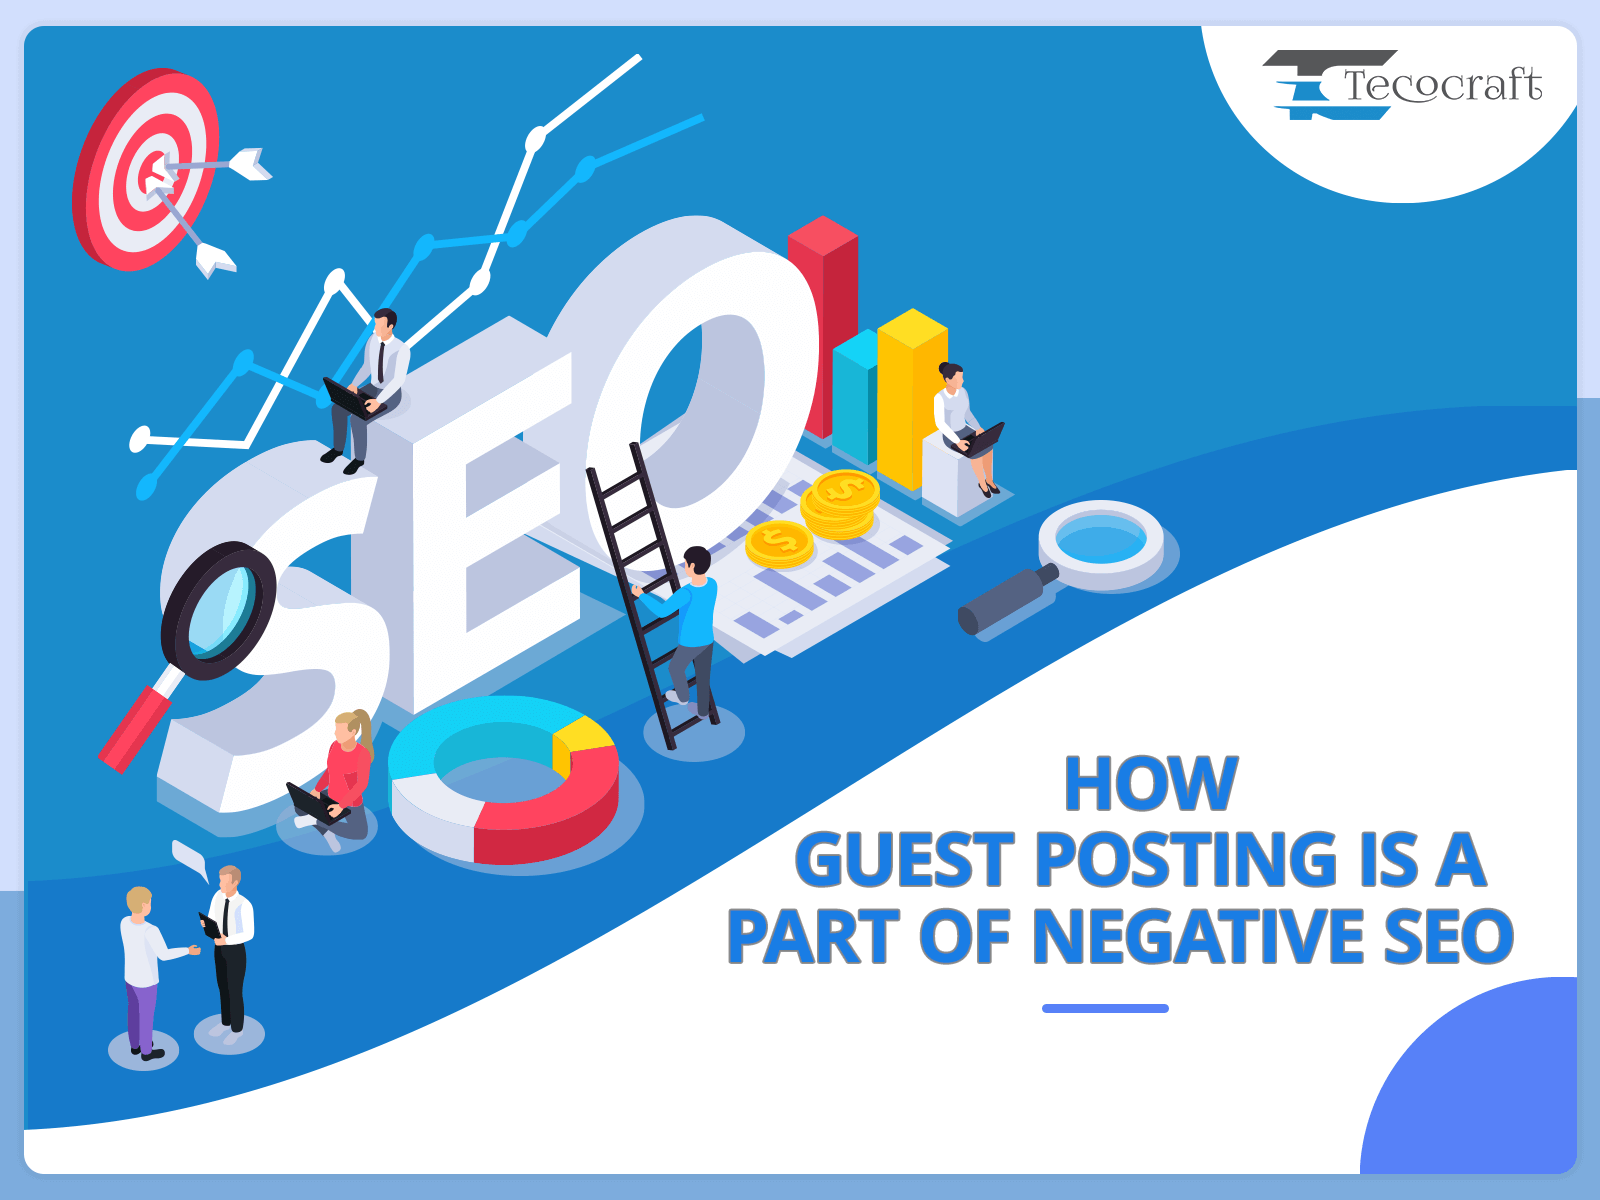 guest posting is a part of Negative SEO